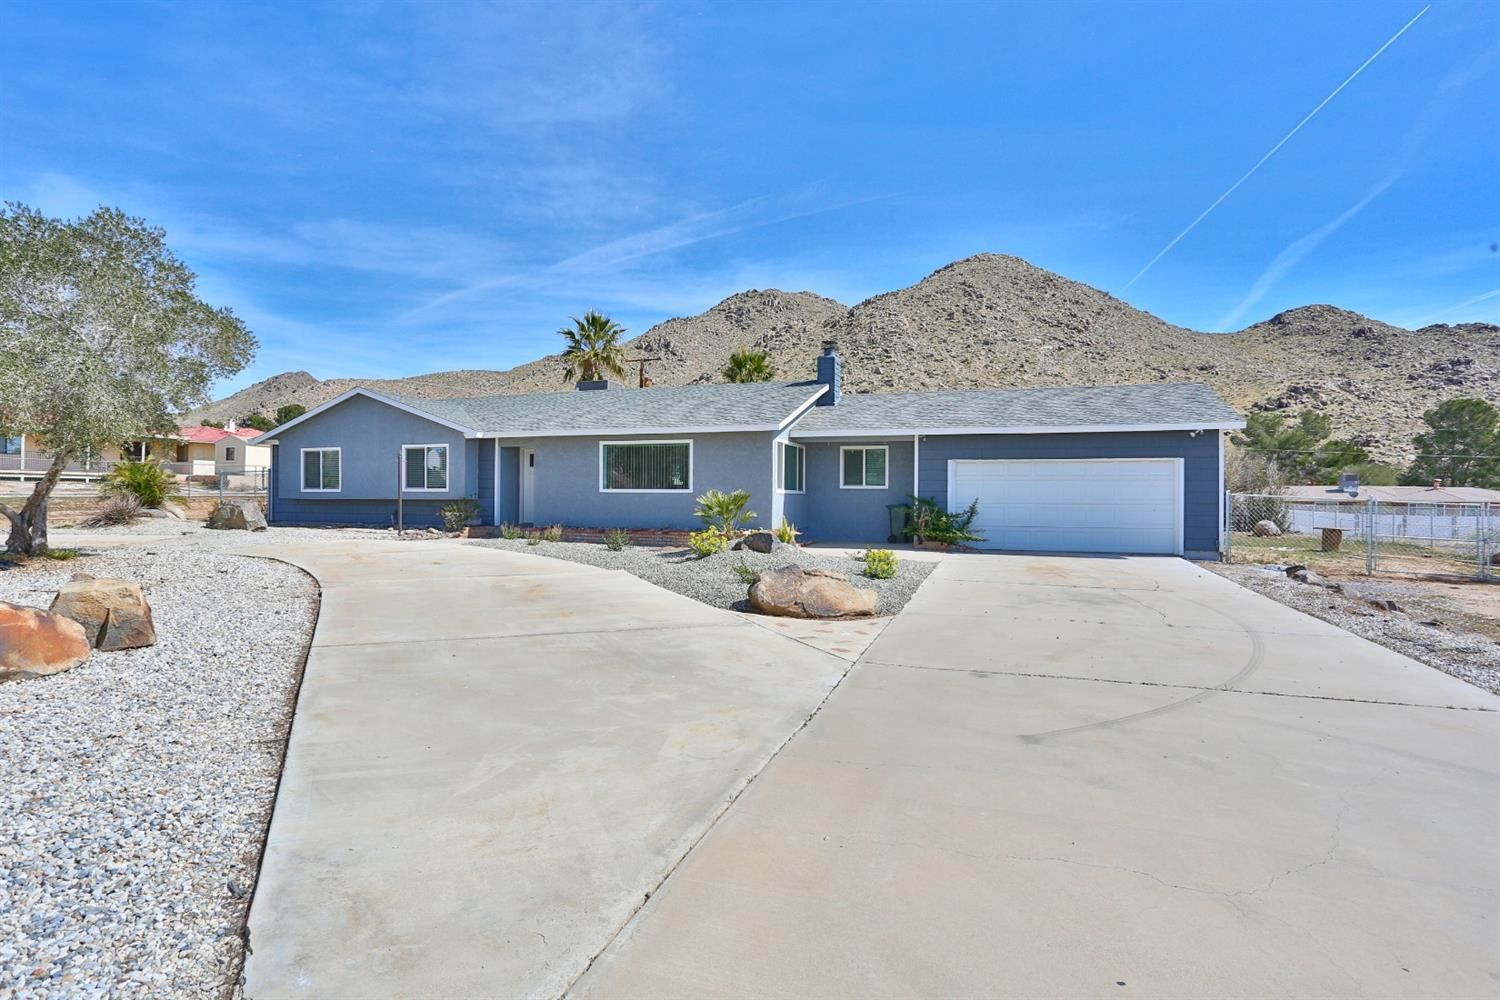 16087 Mandan Road, Apple Valley, CA 92307 - MLS#: 522918